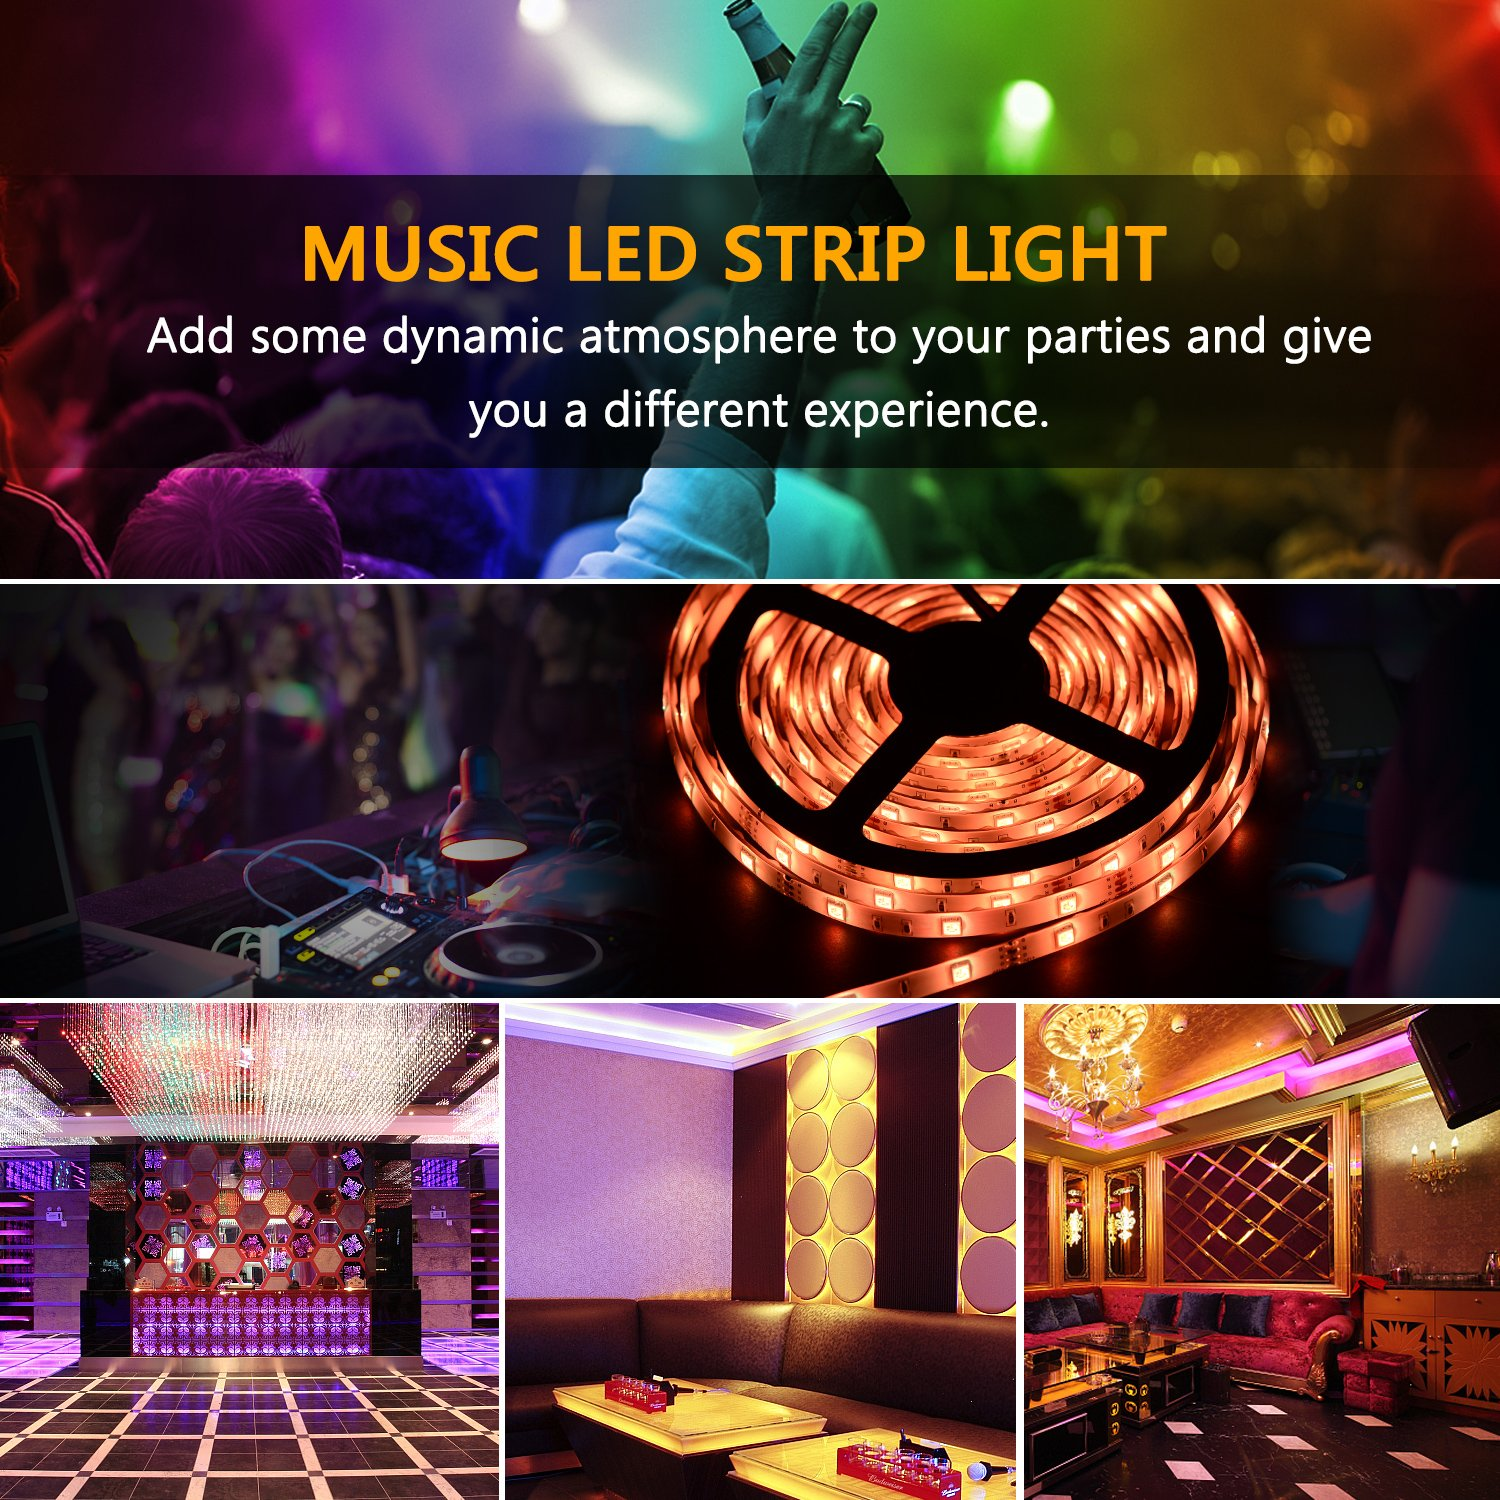 SUNNEST Music Activated LED Strip Light Kit, Waterproof 16.4ft 300 LEDs RGB SMD 5050 LED Tape with Remote Controller, IR Receiver, Power Supply, Sync with Music by SUNNEST (Image #8)